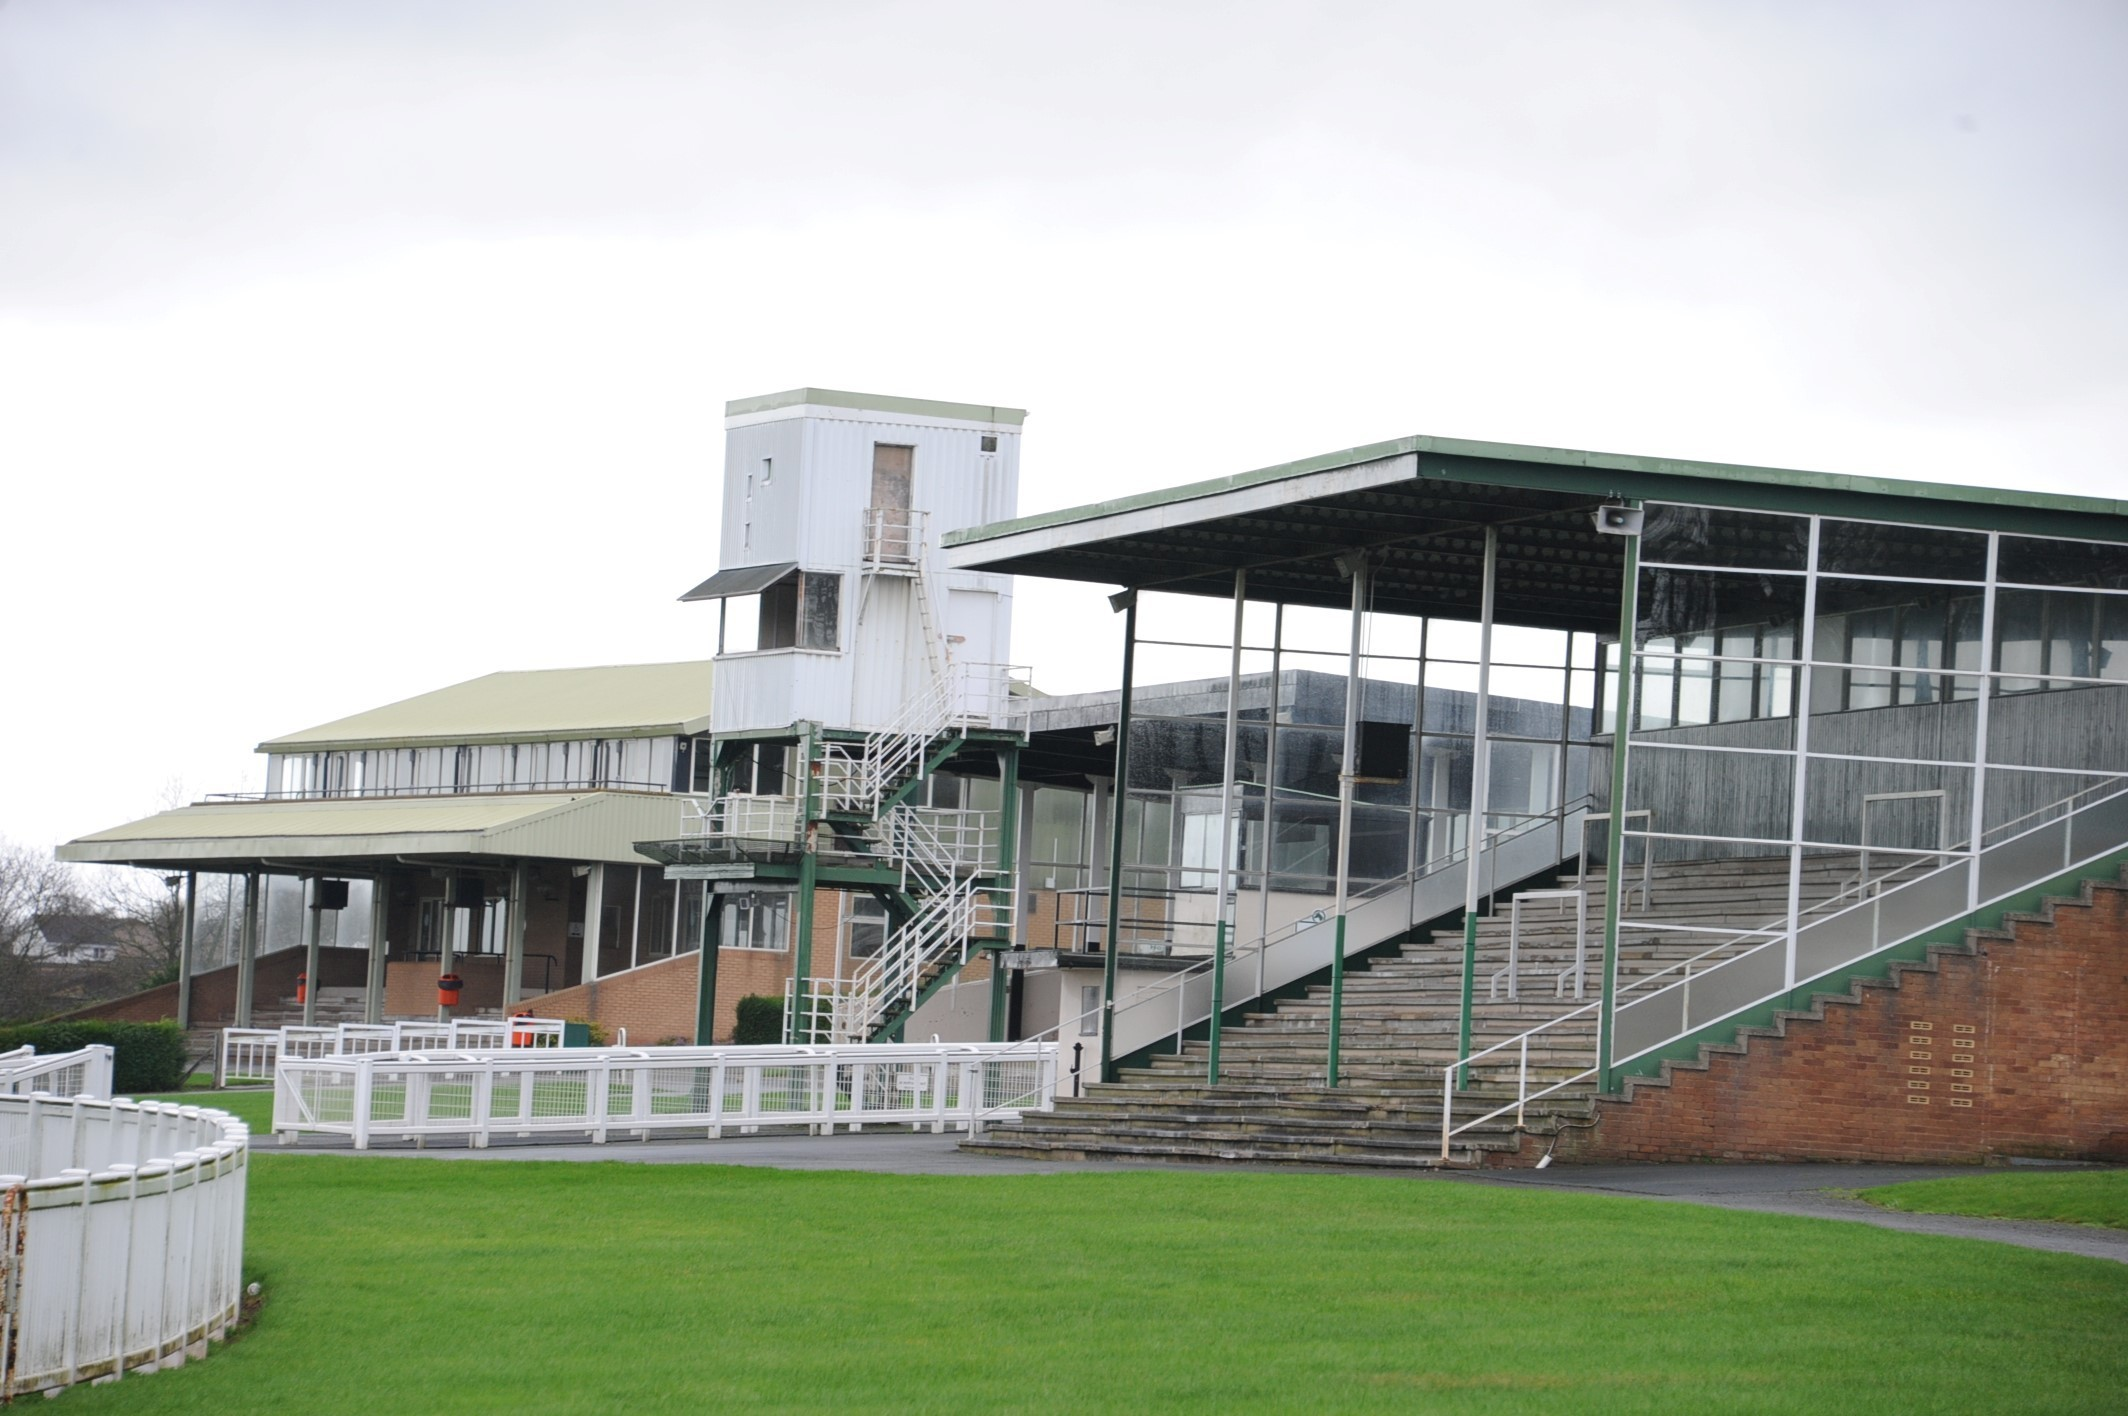 There will be a point-to-point meeting at Hereford Racecourse this Saturday